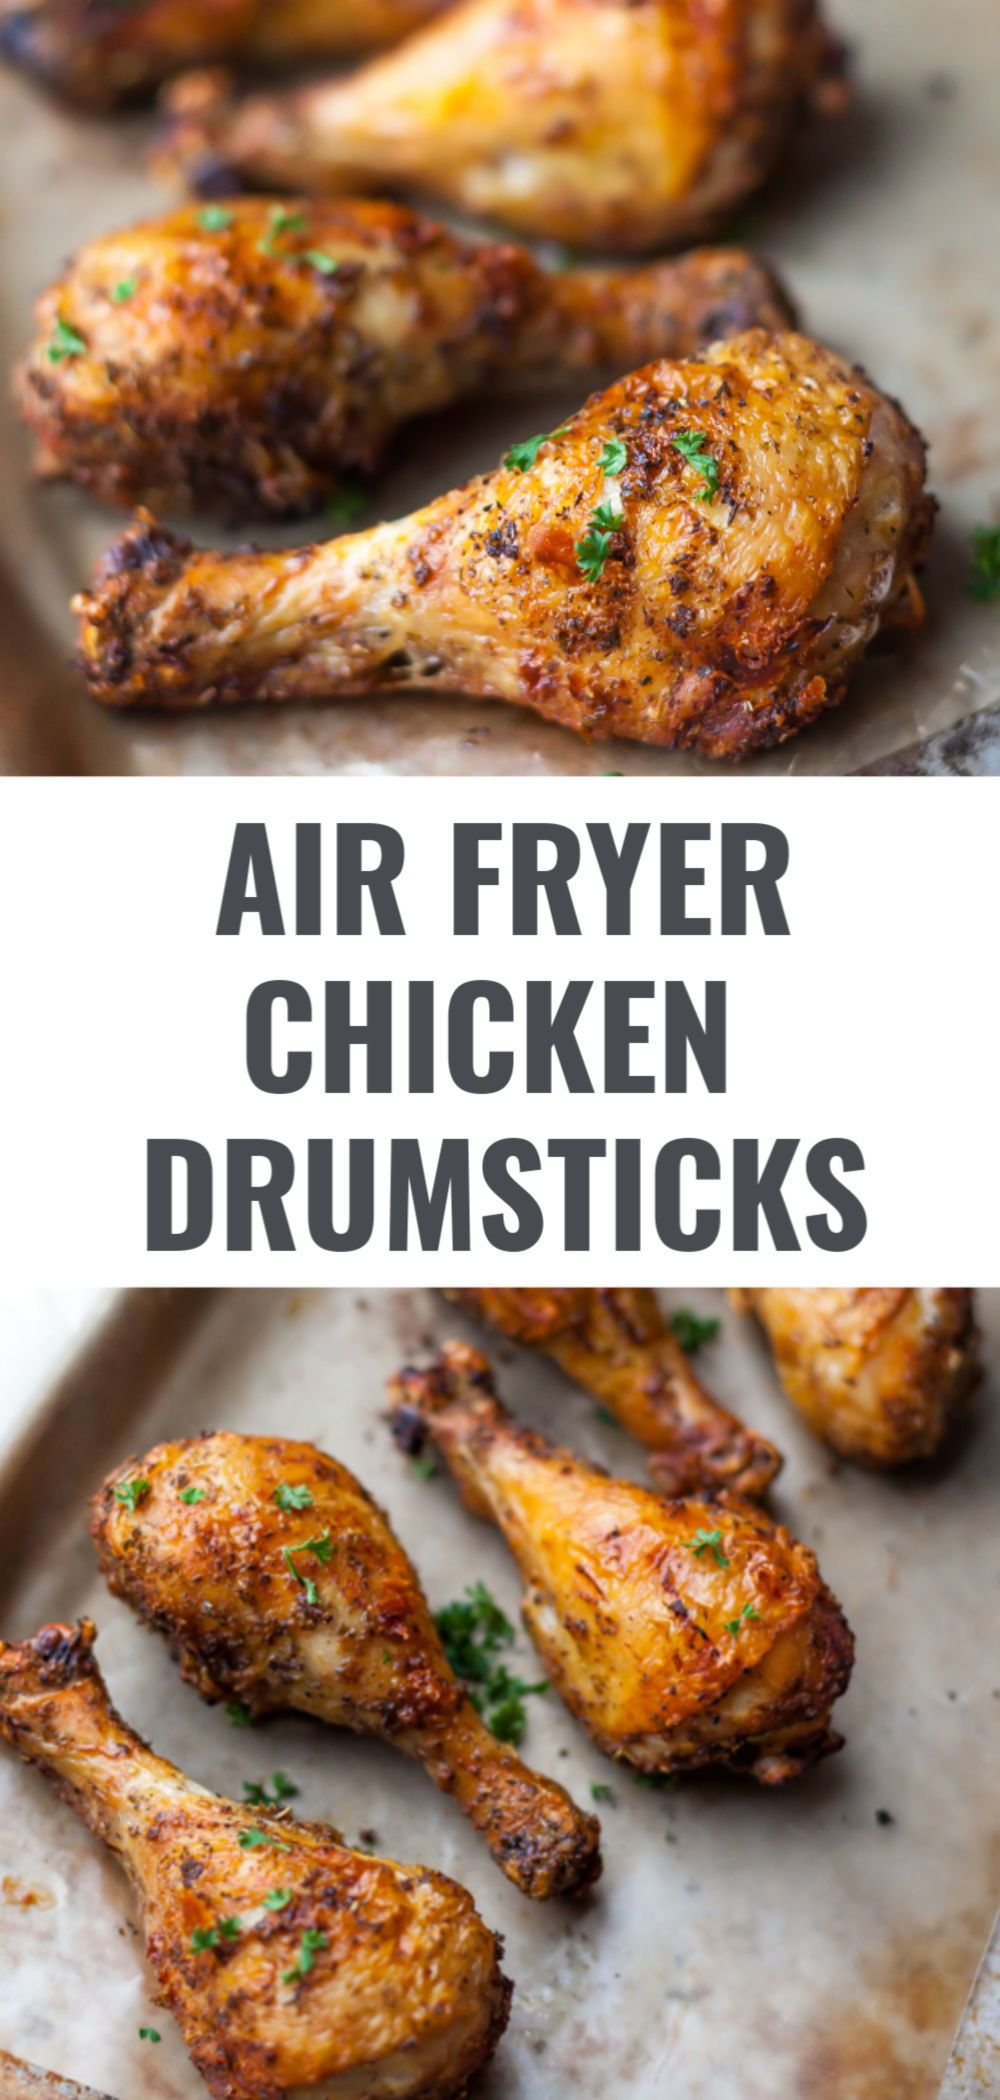 These easy and healthy air fryer drumsticks are crispy on